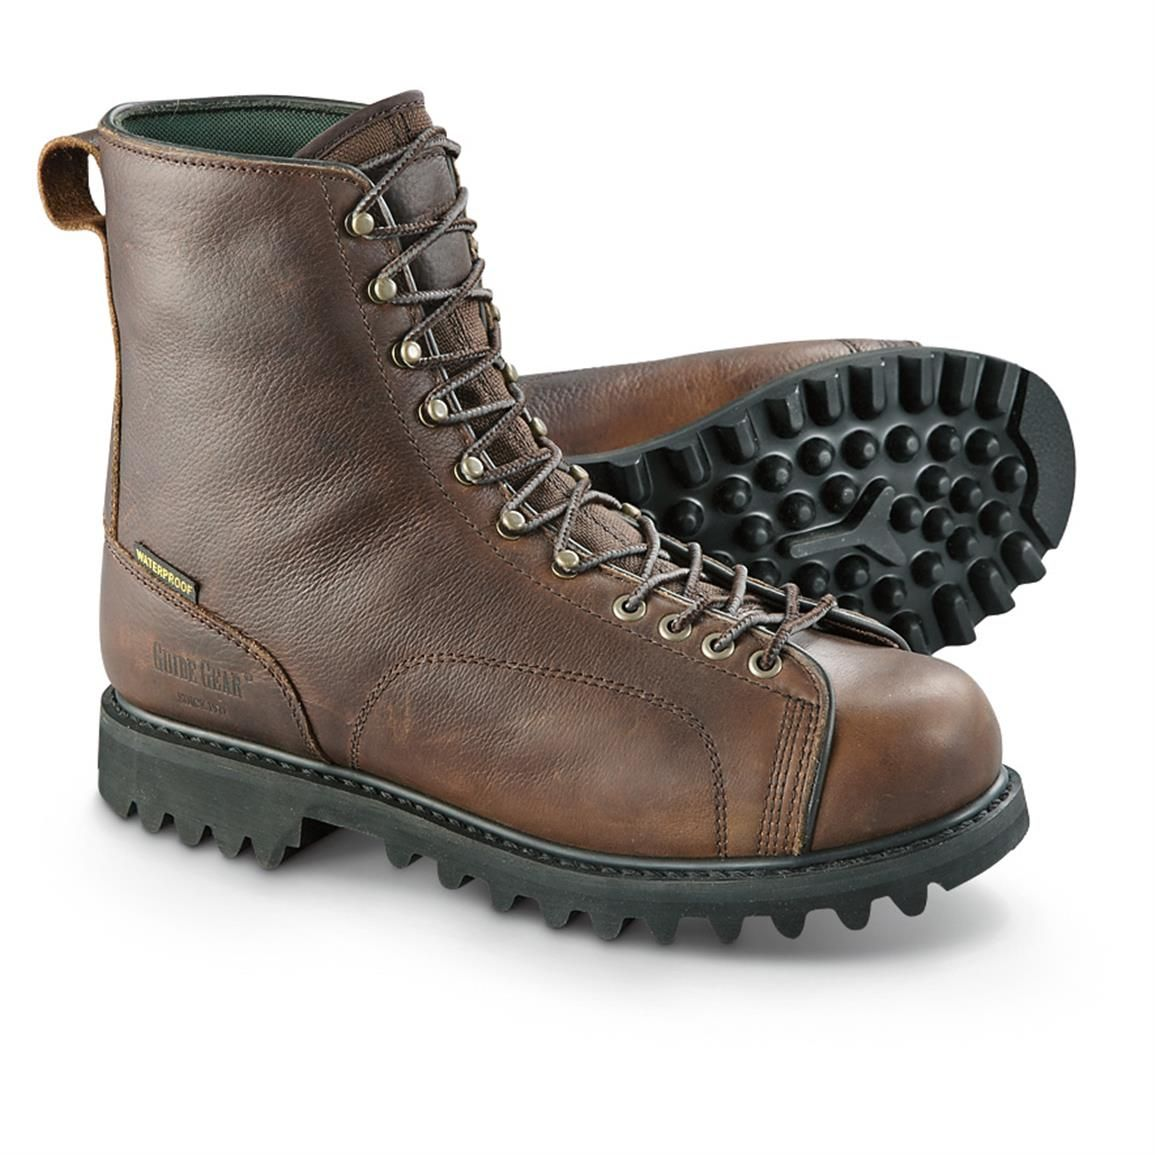 Guide Gear Men S Leather Lace To Toe Hunting Boot Boots Leather Hunting Boots Mens Leather Boots